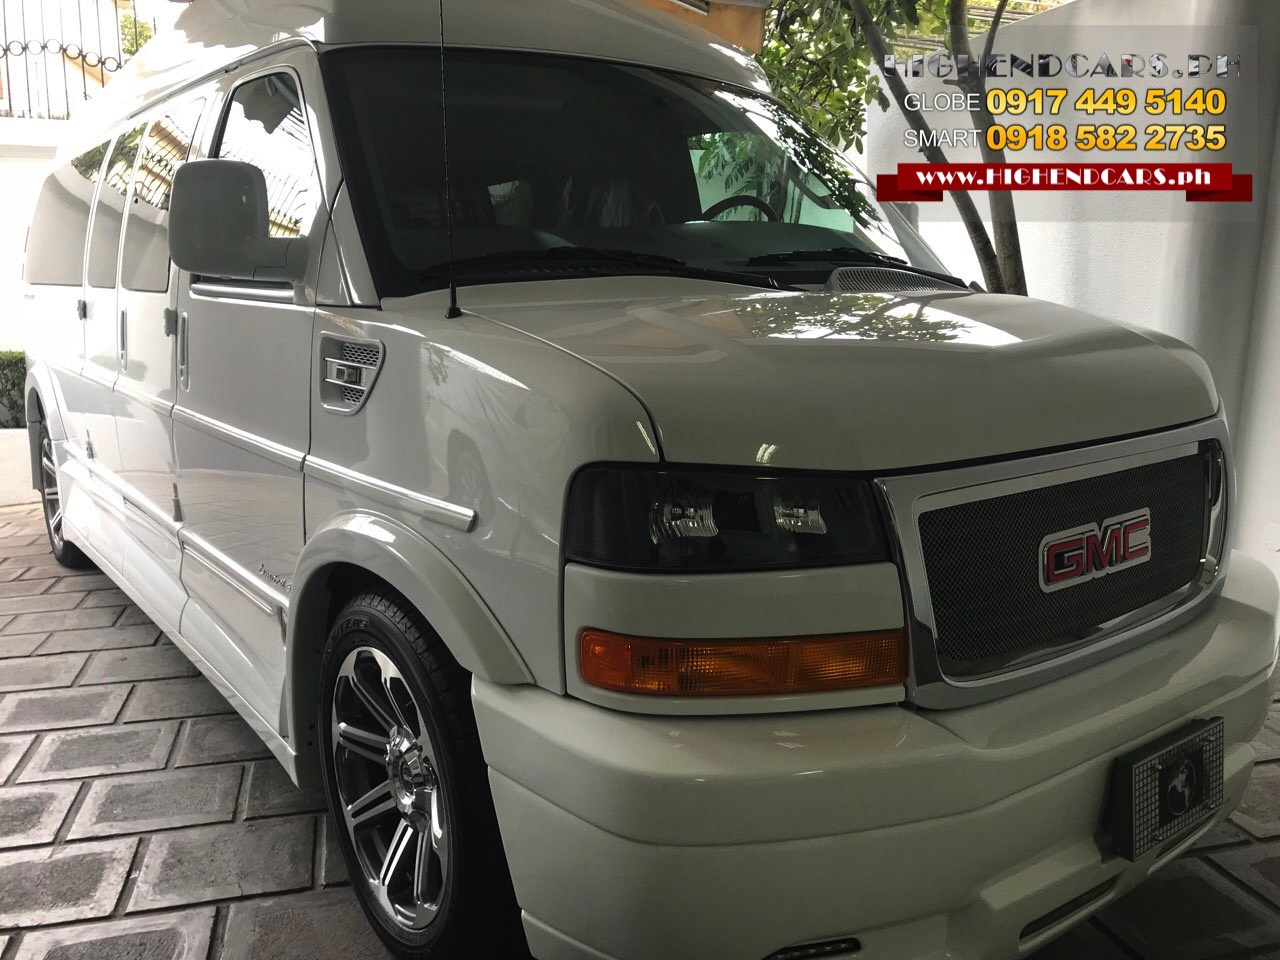 2018 GMC SAVANA EXTENDED EXPLORER LIMITED WHITE